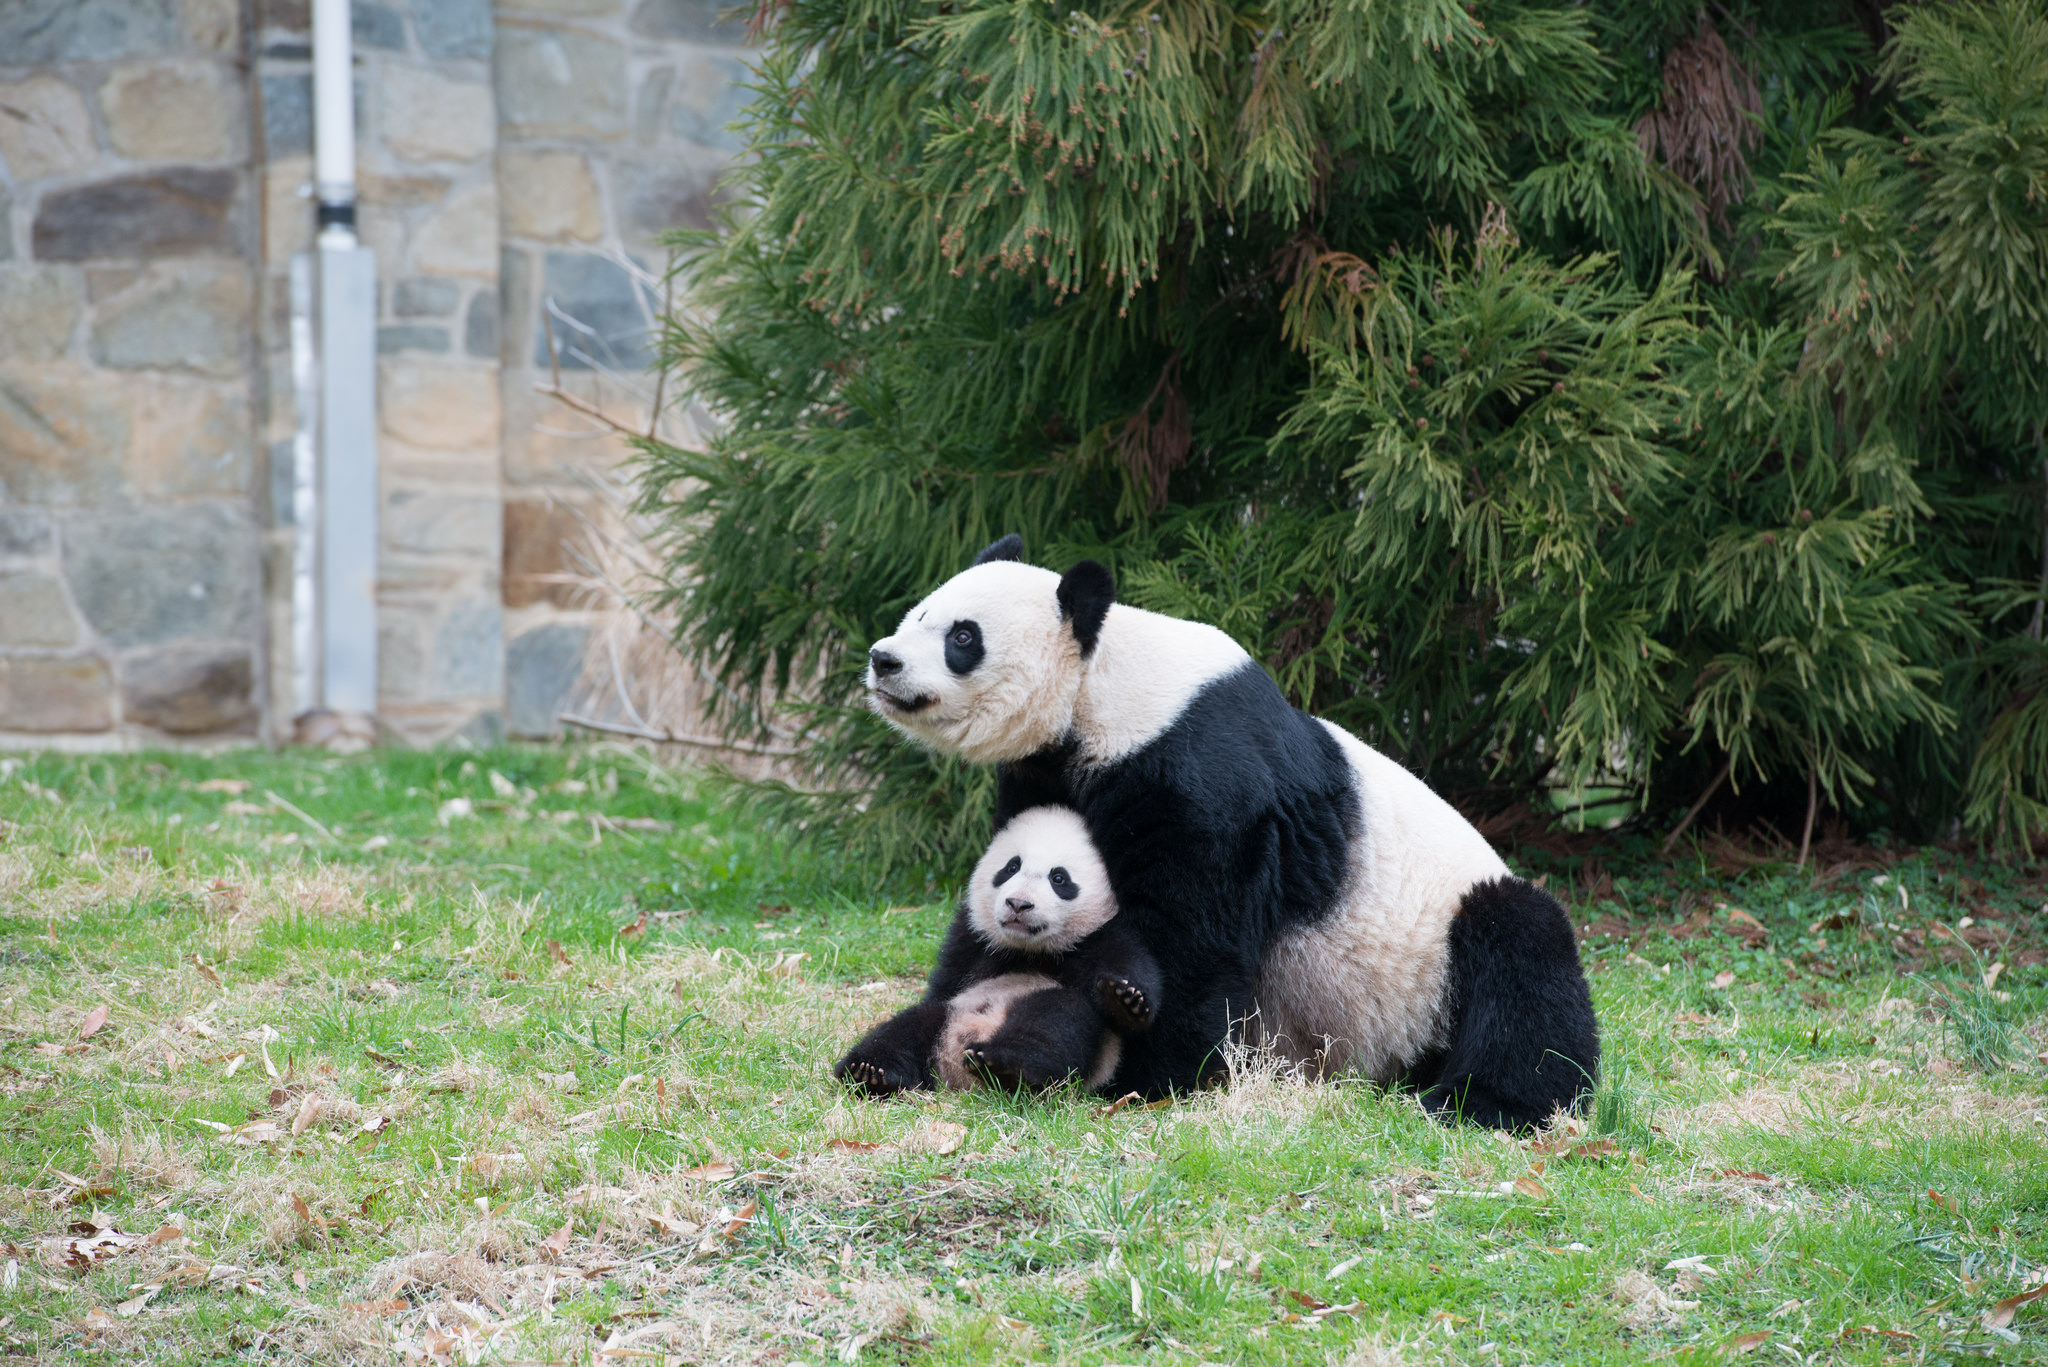 Mei Xiang with daughter Bao Bao in April 2014 at the National Zoo. Photo by Abby Wood, Smithsonian's National Zoo